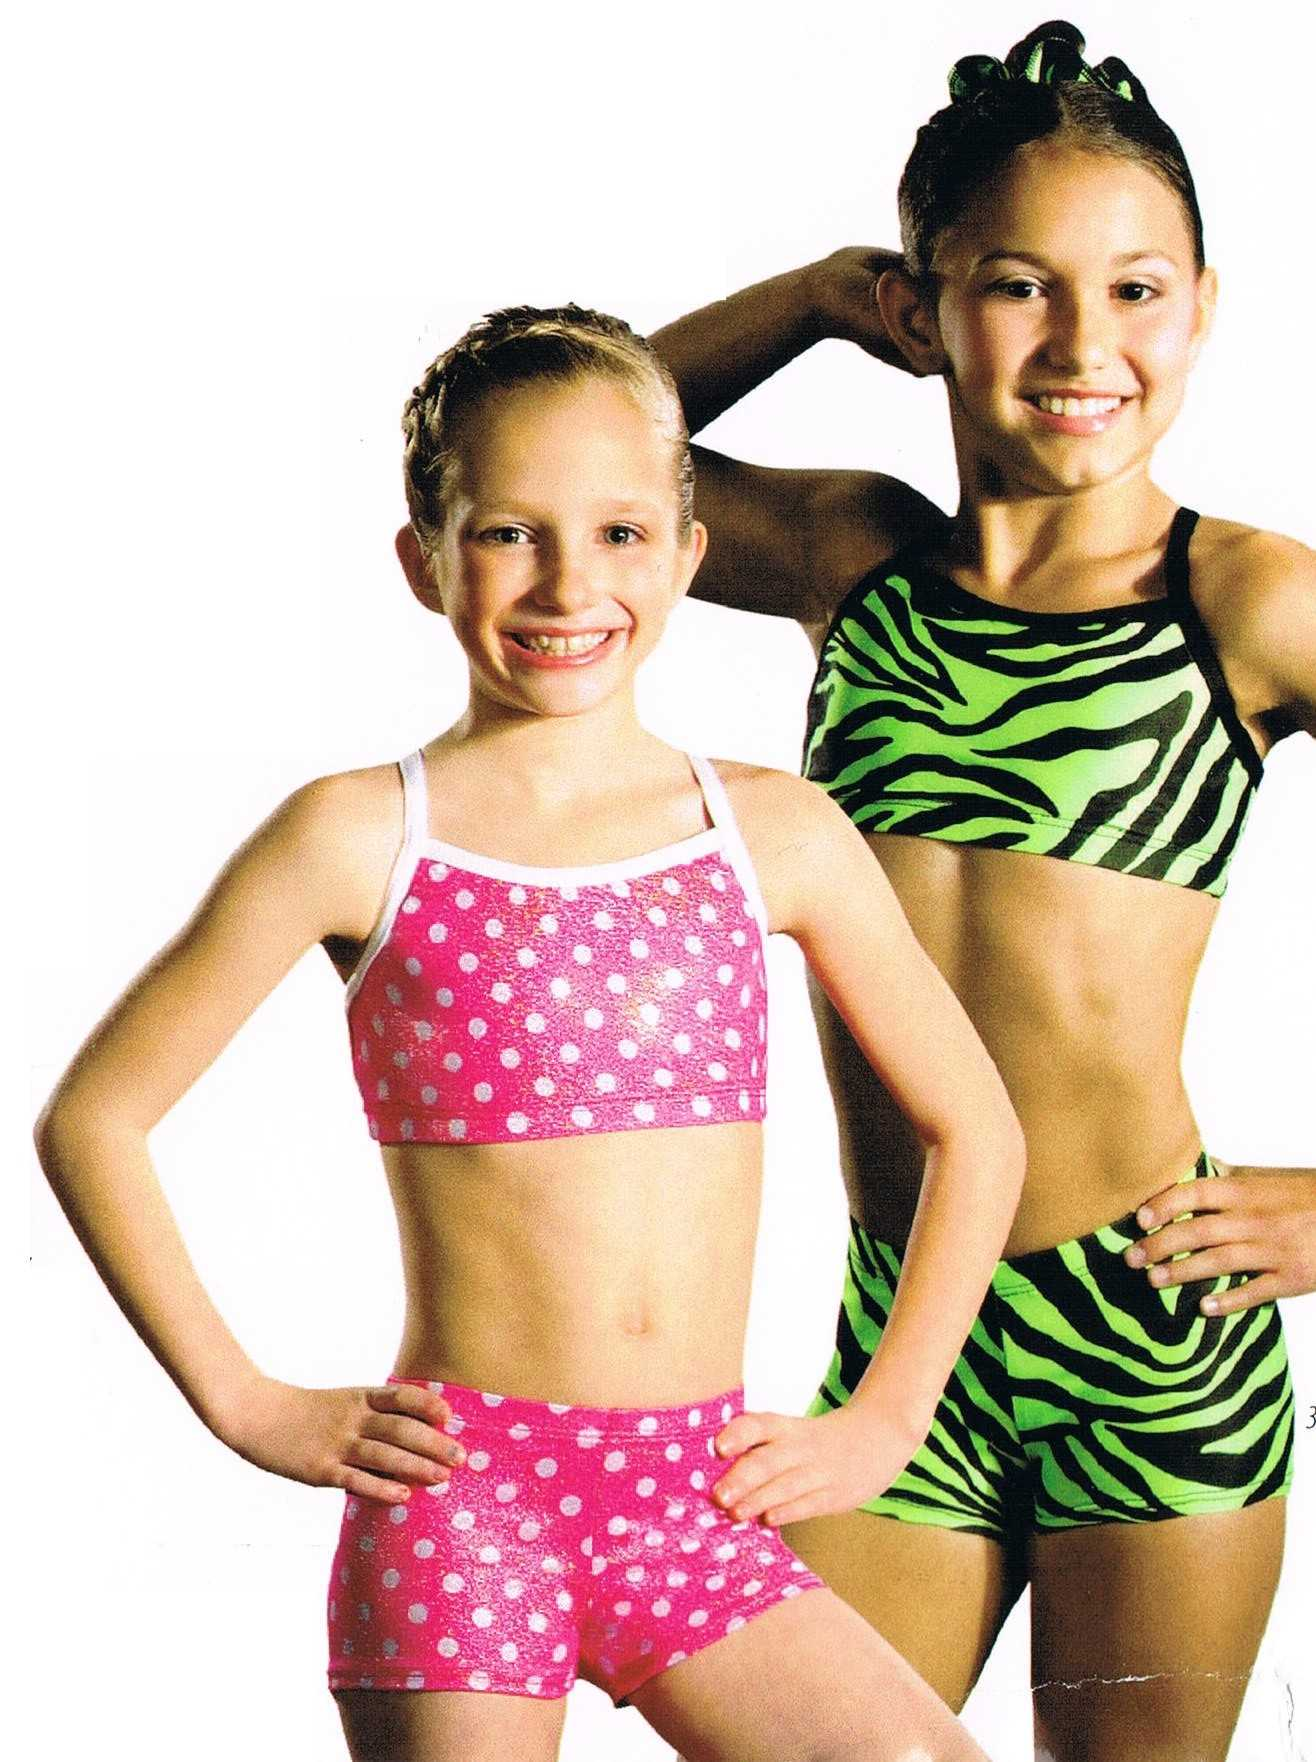 Girls Gymnastics Outfits Submited Images Pic 2 Fly Picture